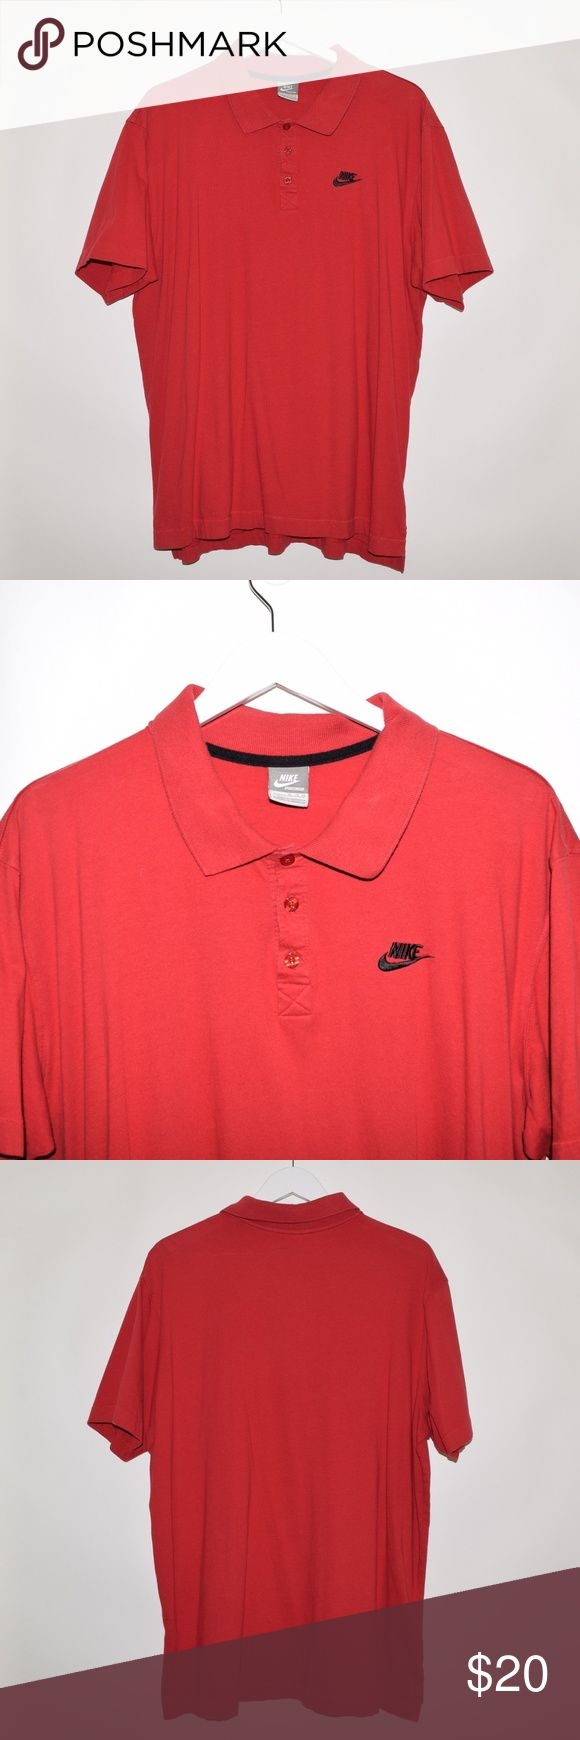 Vintage VTG Nike Sportswear Embroidered Polo Shirt Brand: Nike Sportswear  Item name: Men's Vintage Soft Cotton Polo Shirt  Color: red  Condition: This is a pre-owned item. It is in excellent condition with no stains, rips, holes, etc. Comes from a smoke free household.  Size: Men's XL   Material: 100% Cotton  Measurements:   Pit to Pit - 25 inches  Neckline to bottom - 29 inches Nike Shirts Polos